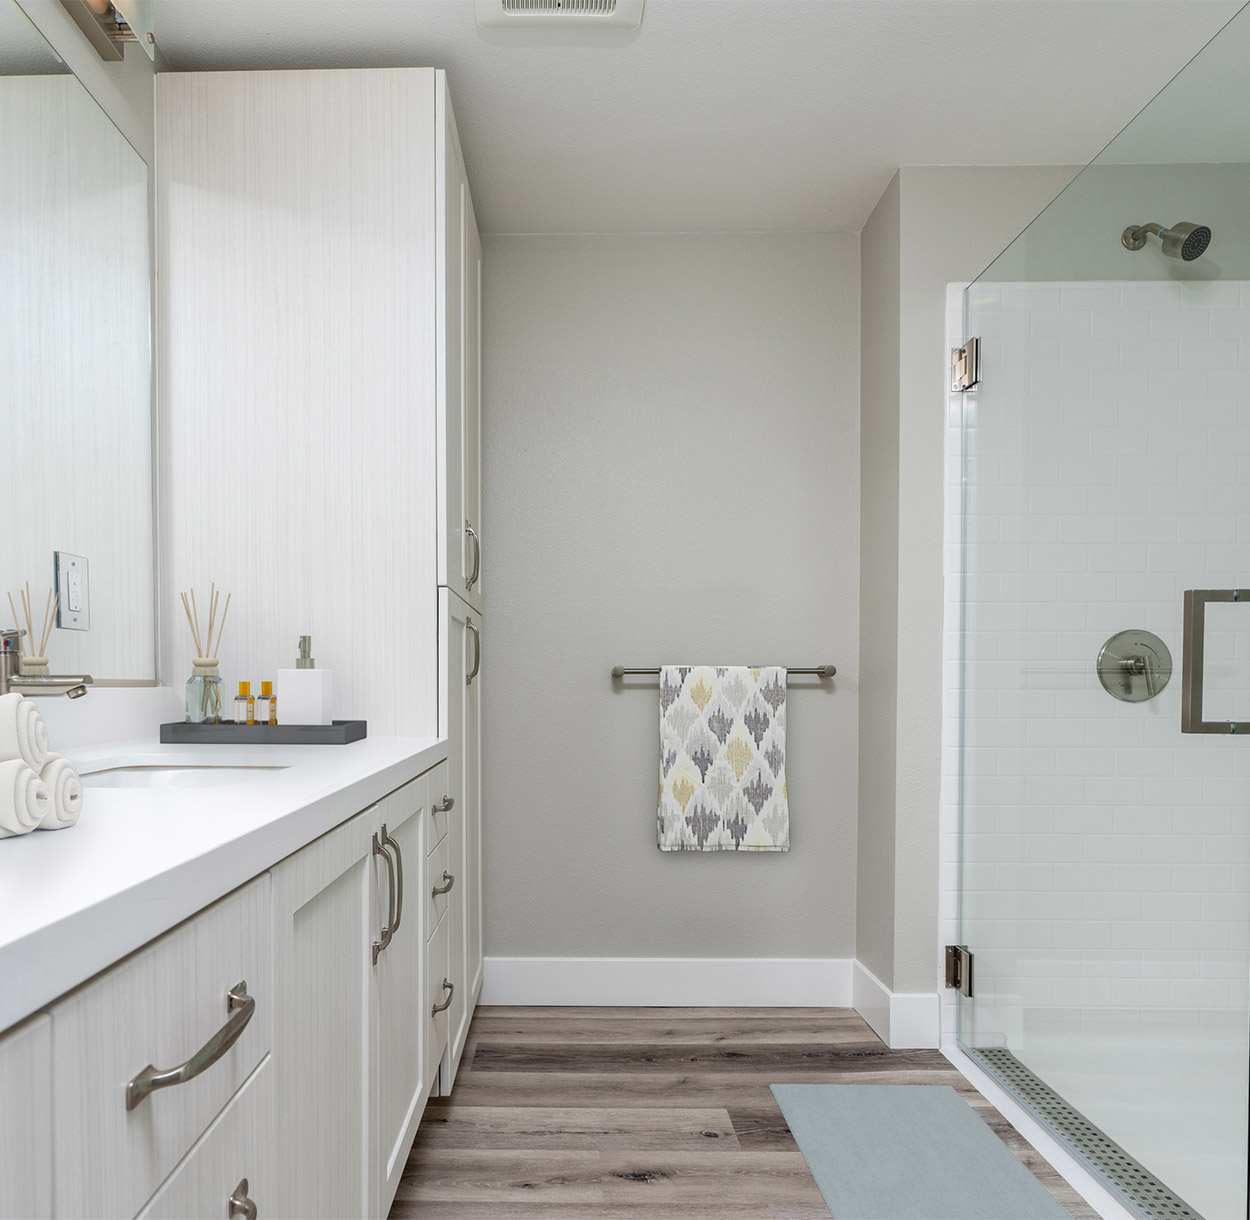 1250 Lakeside apartment bathroom with wood floor, white cabinets and counters, and glass walled shower.